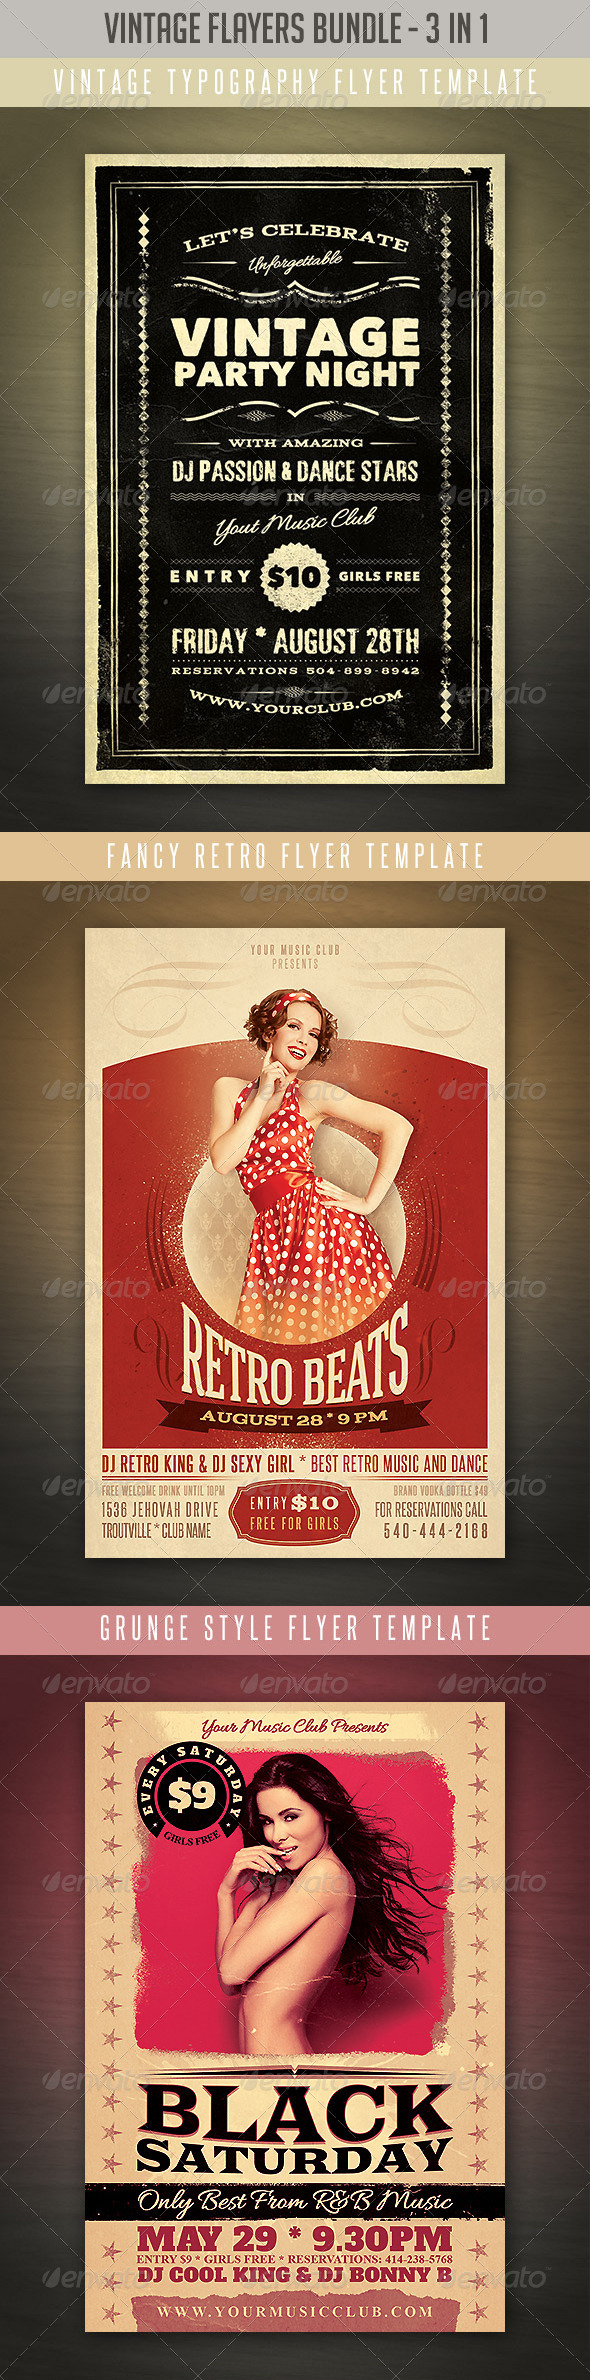 Vintage & Retro Flyers Bundle 2